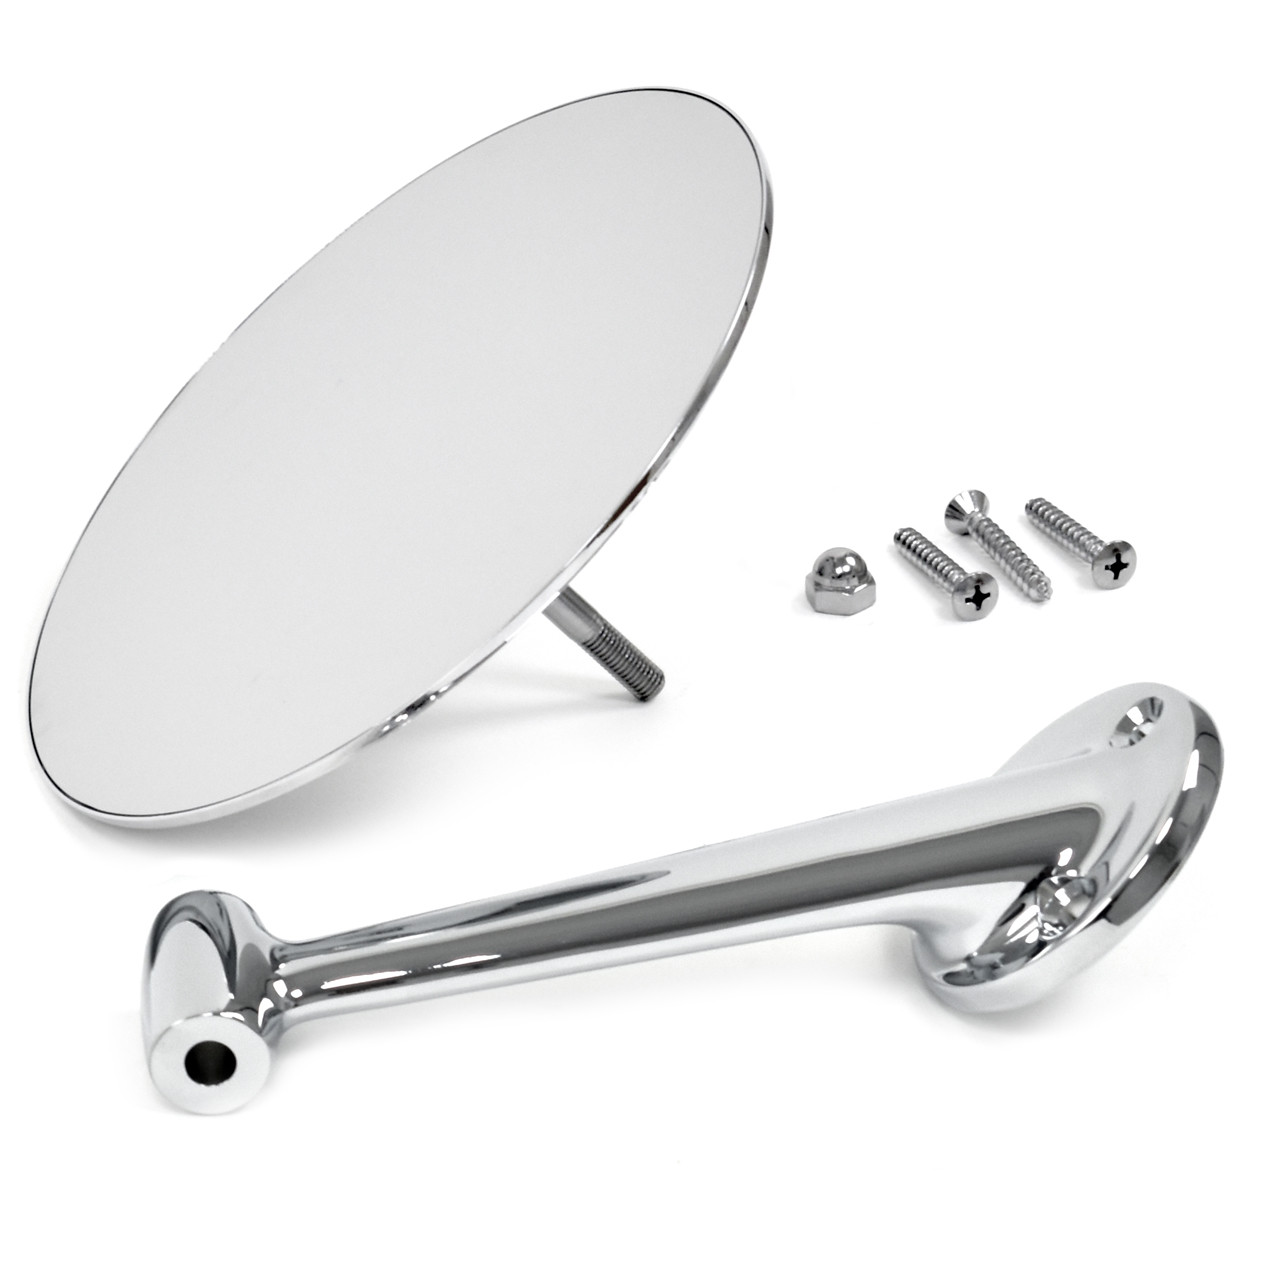 Outside Mirror 6 Inch Round Driver Side [FV-BM035]